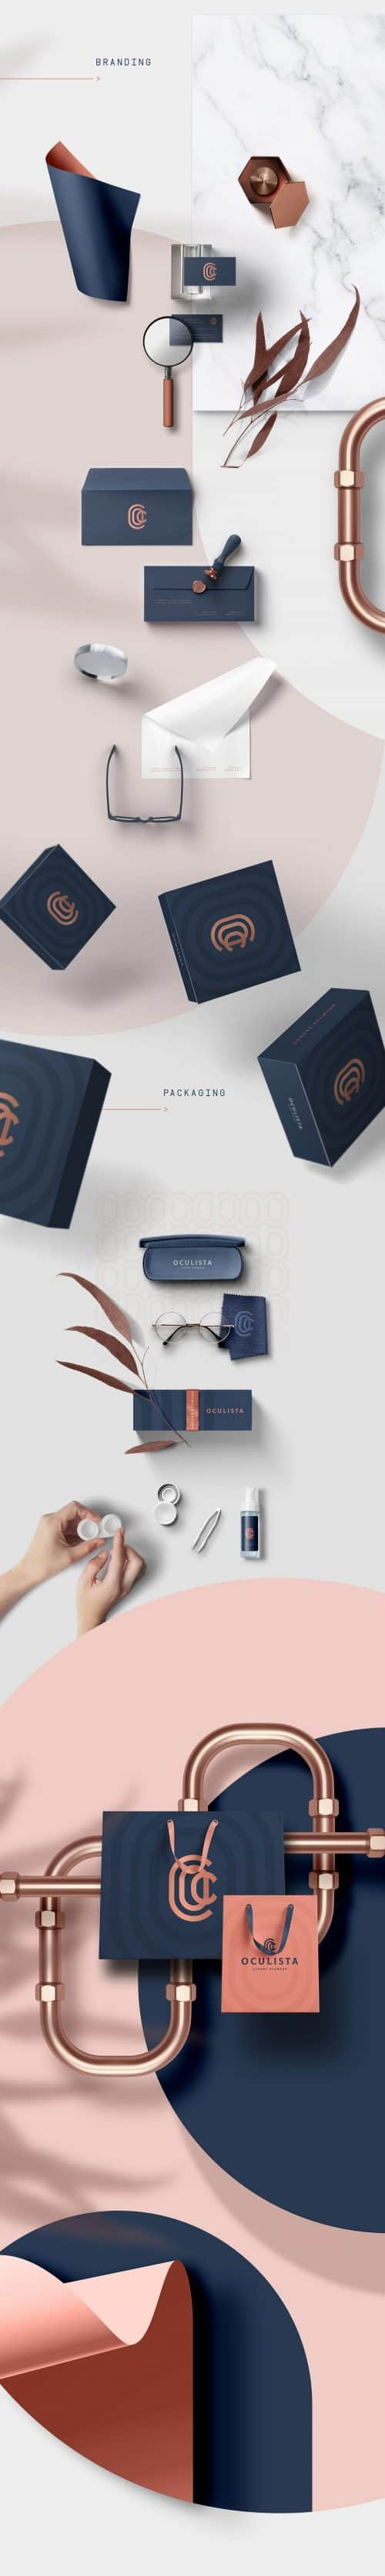 Oculista Eyewear Visual Branding Design 02